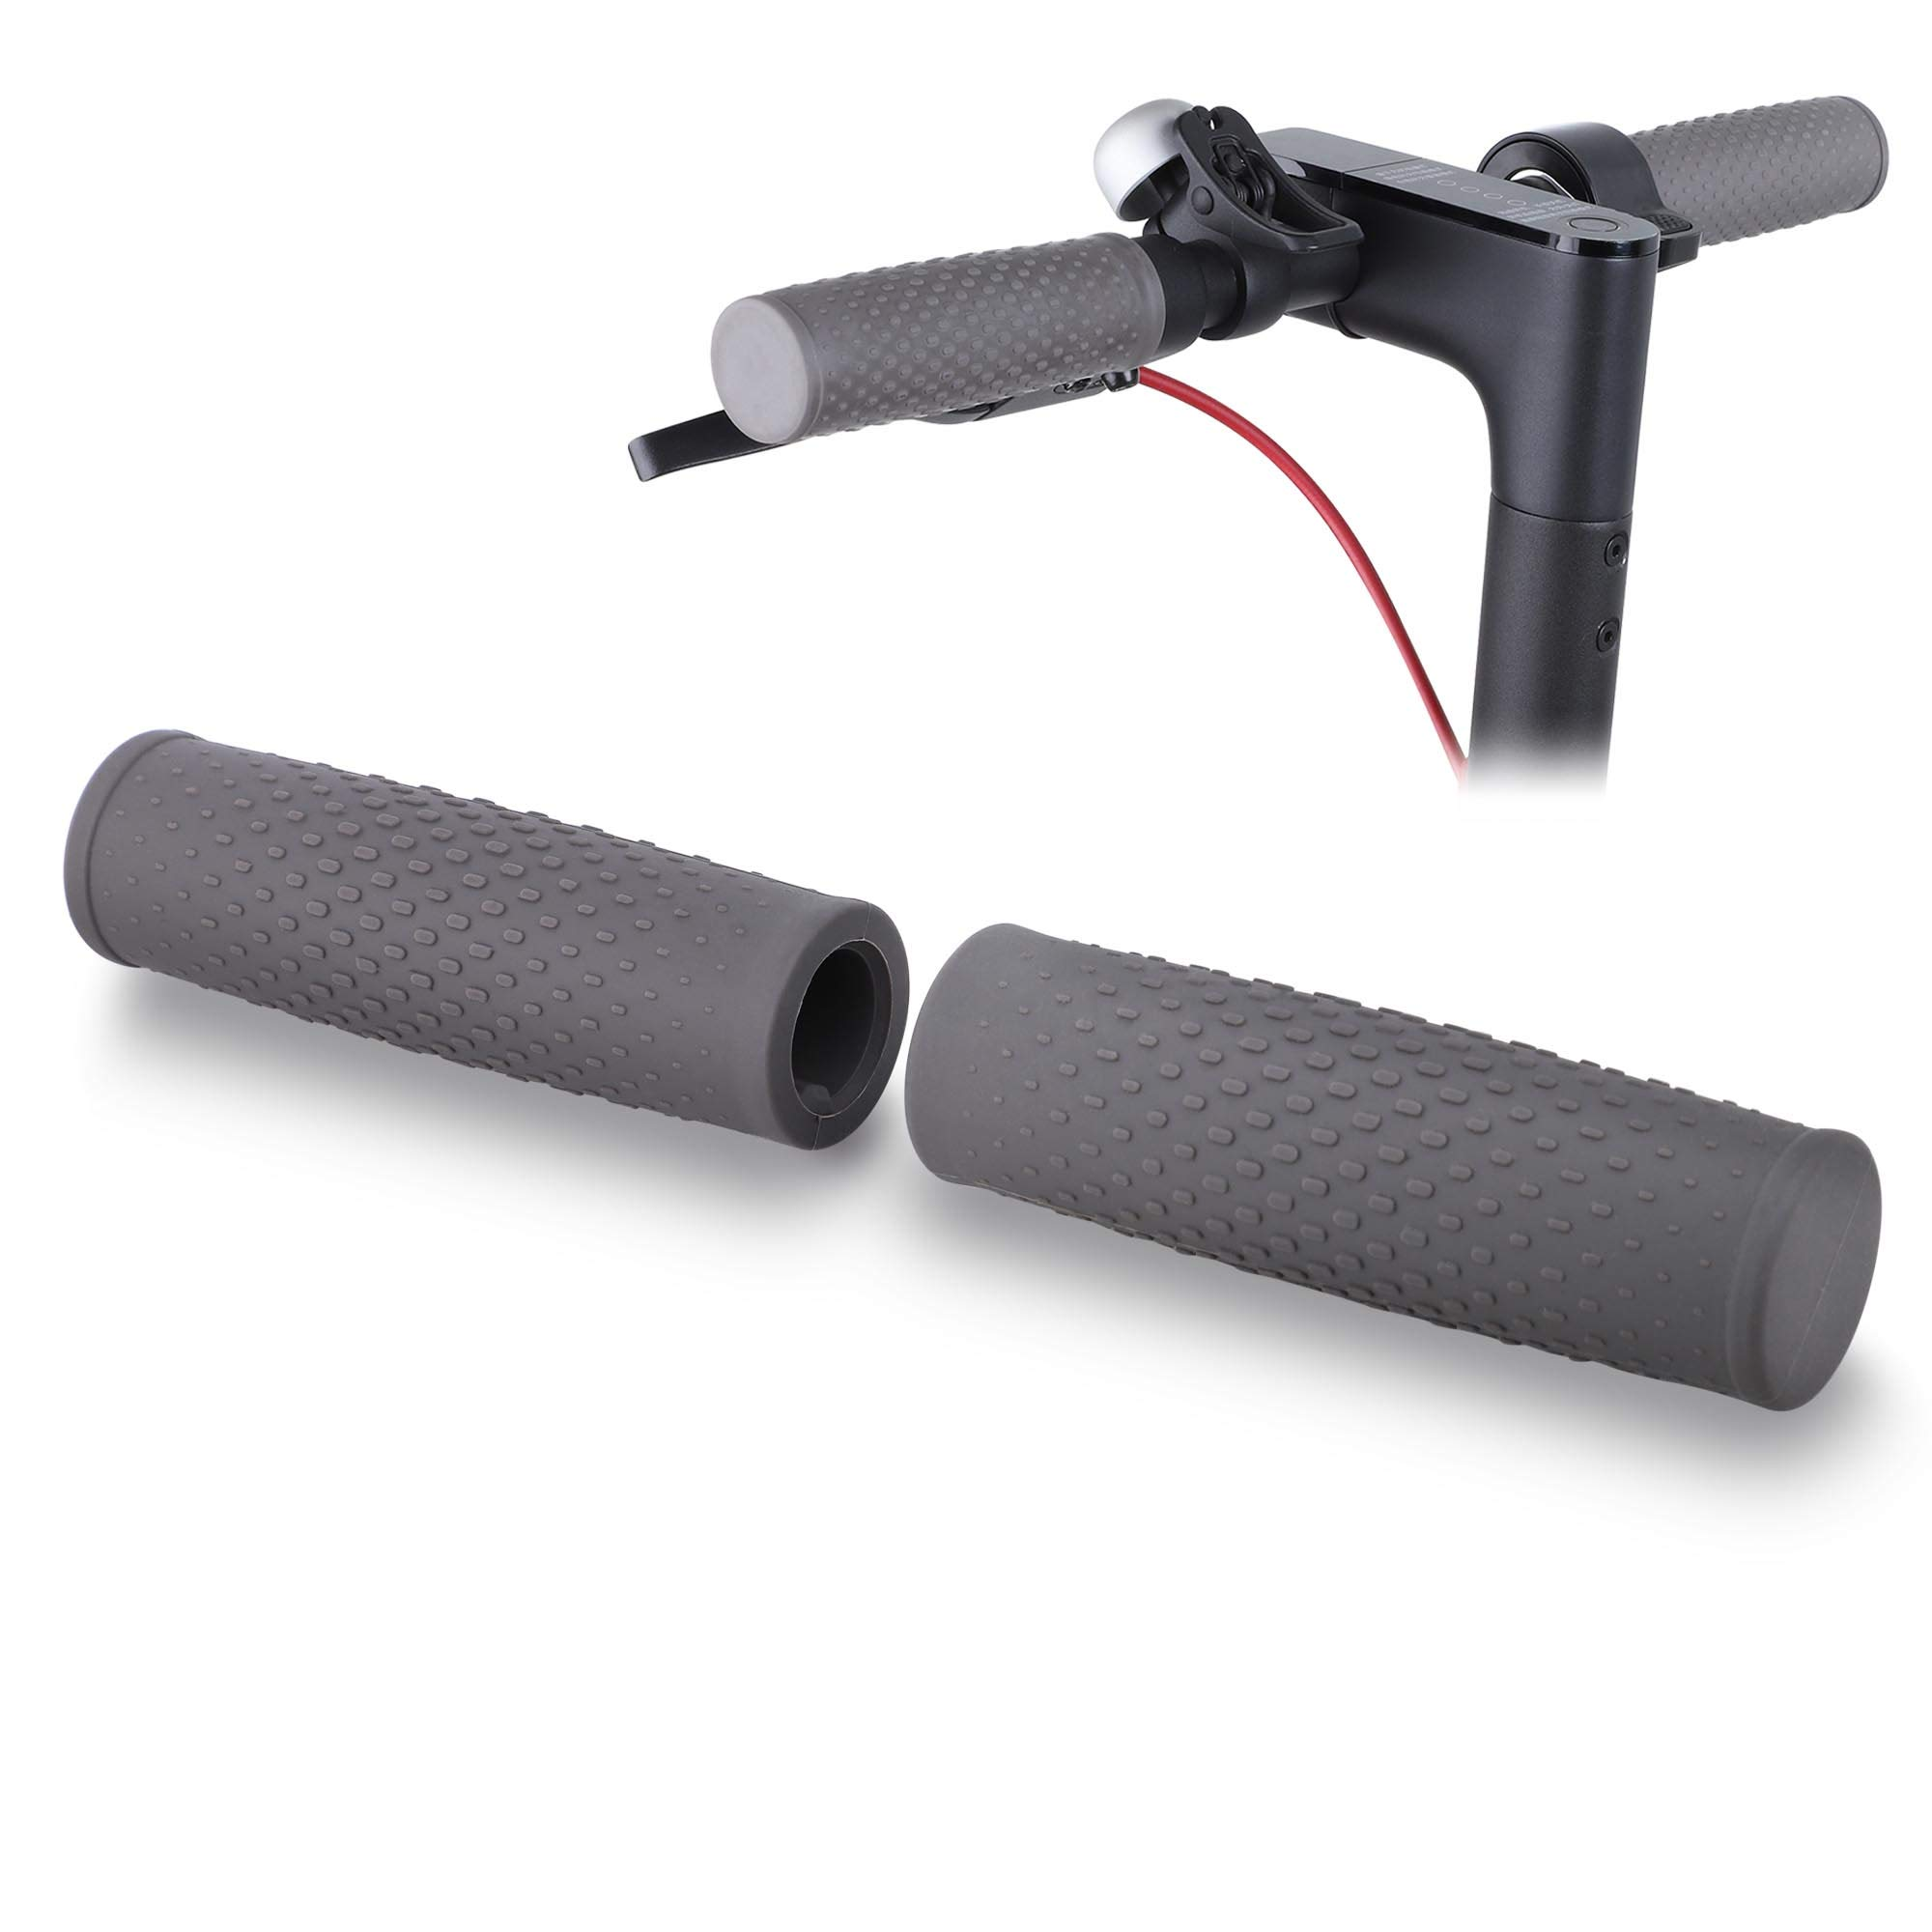 TOMALL Rubber Handle Bar Grip Anti-Slip Rubber Grips Protection Handle Grips 1 Pair Replacement for Xiaomi Mijia M365